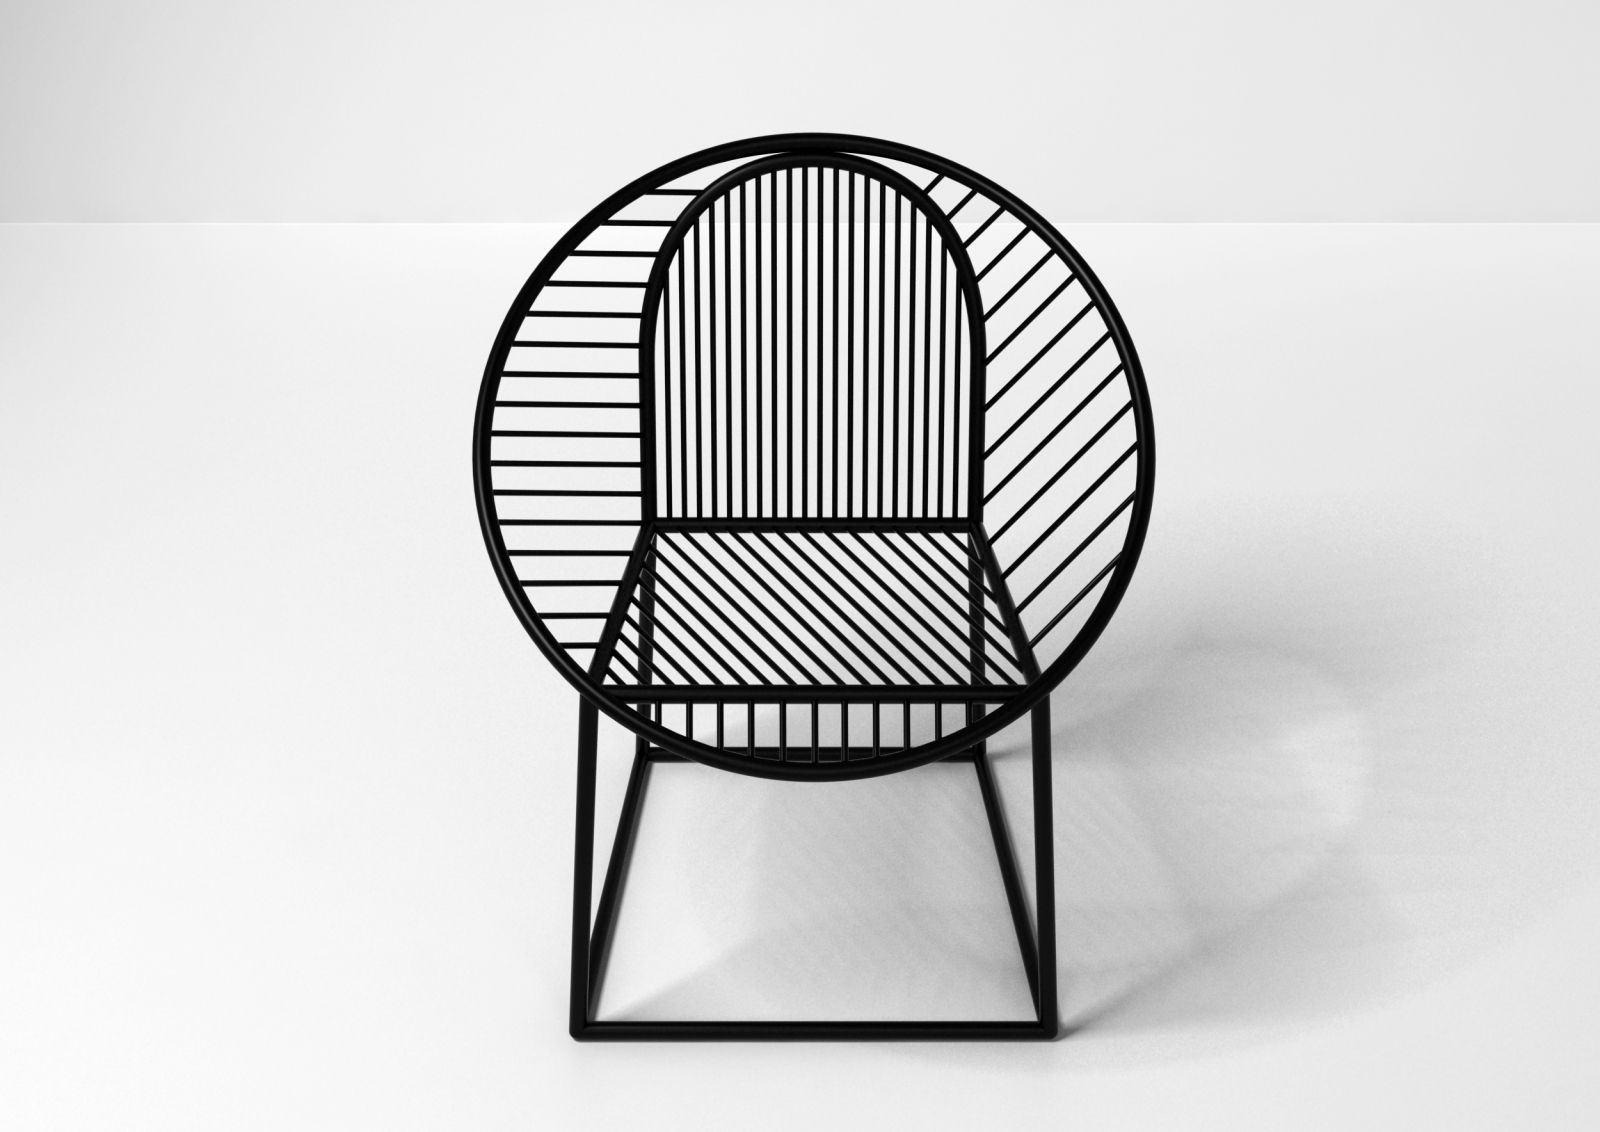 Circle Chair by POOL